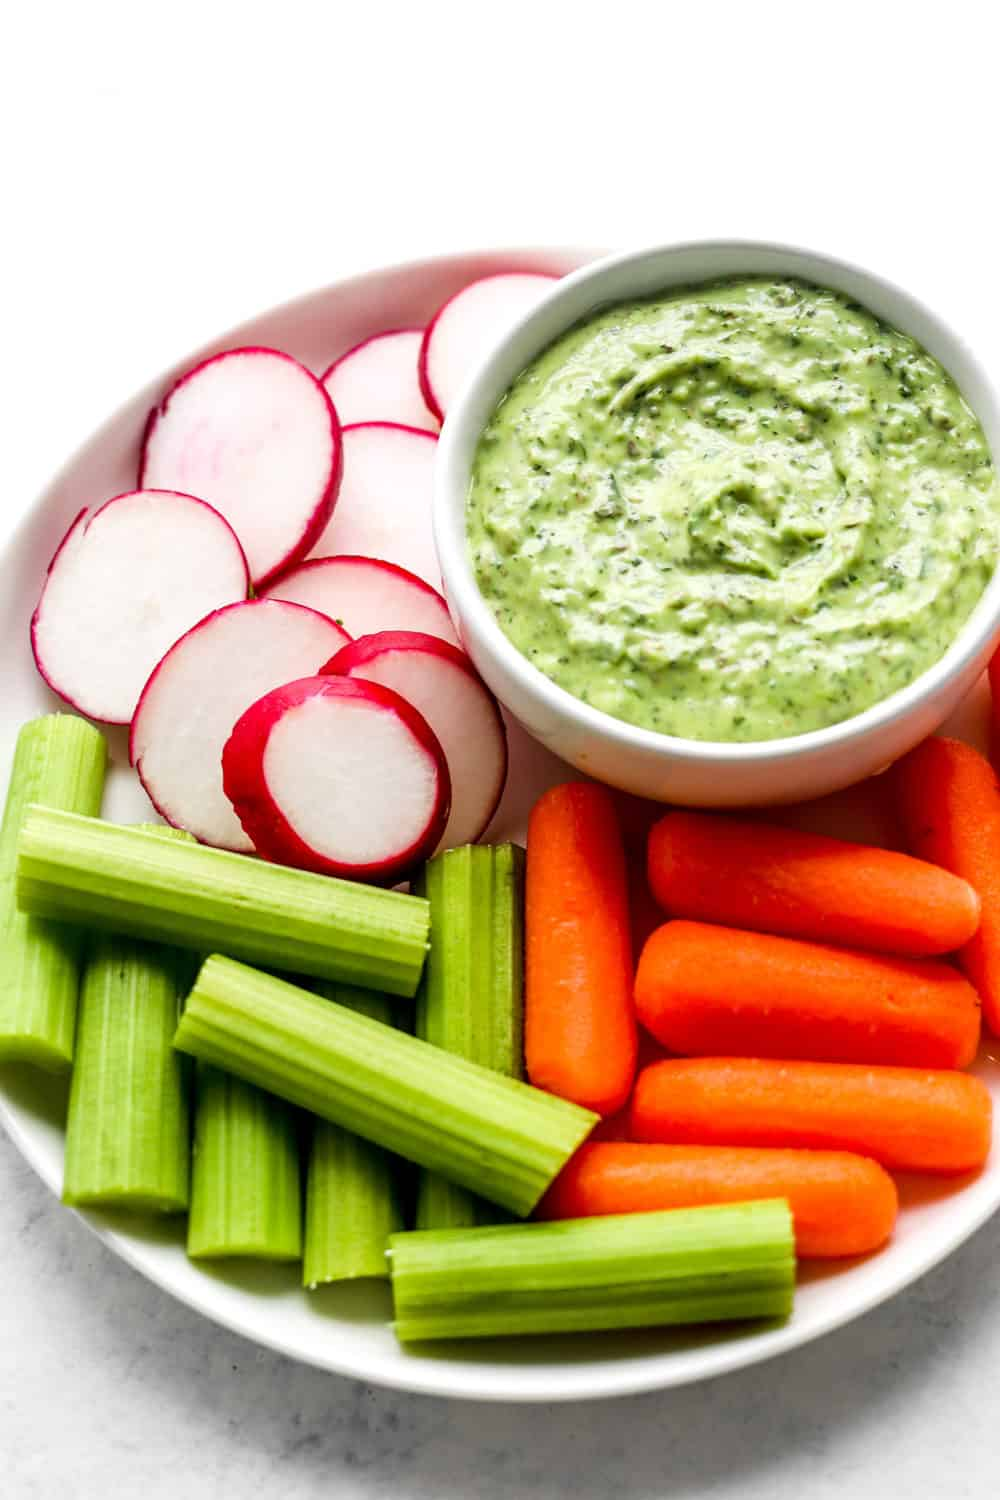 Green goddess dressing in a dip bowl on a round white plate with carrots, radishes and celery sticks around it.